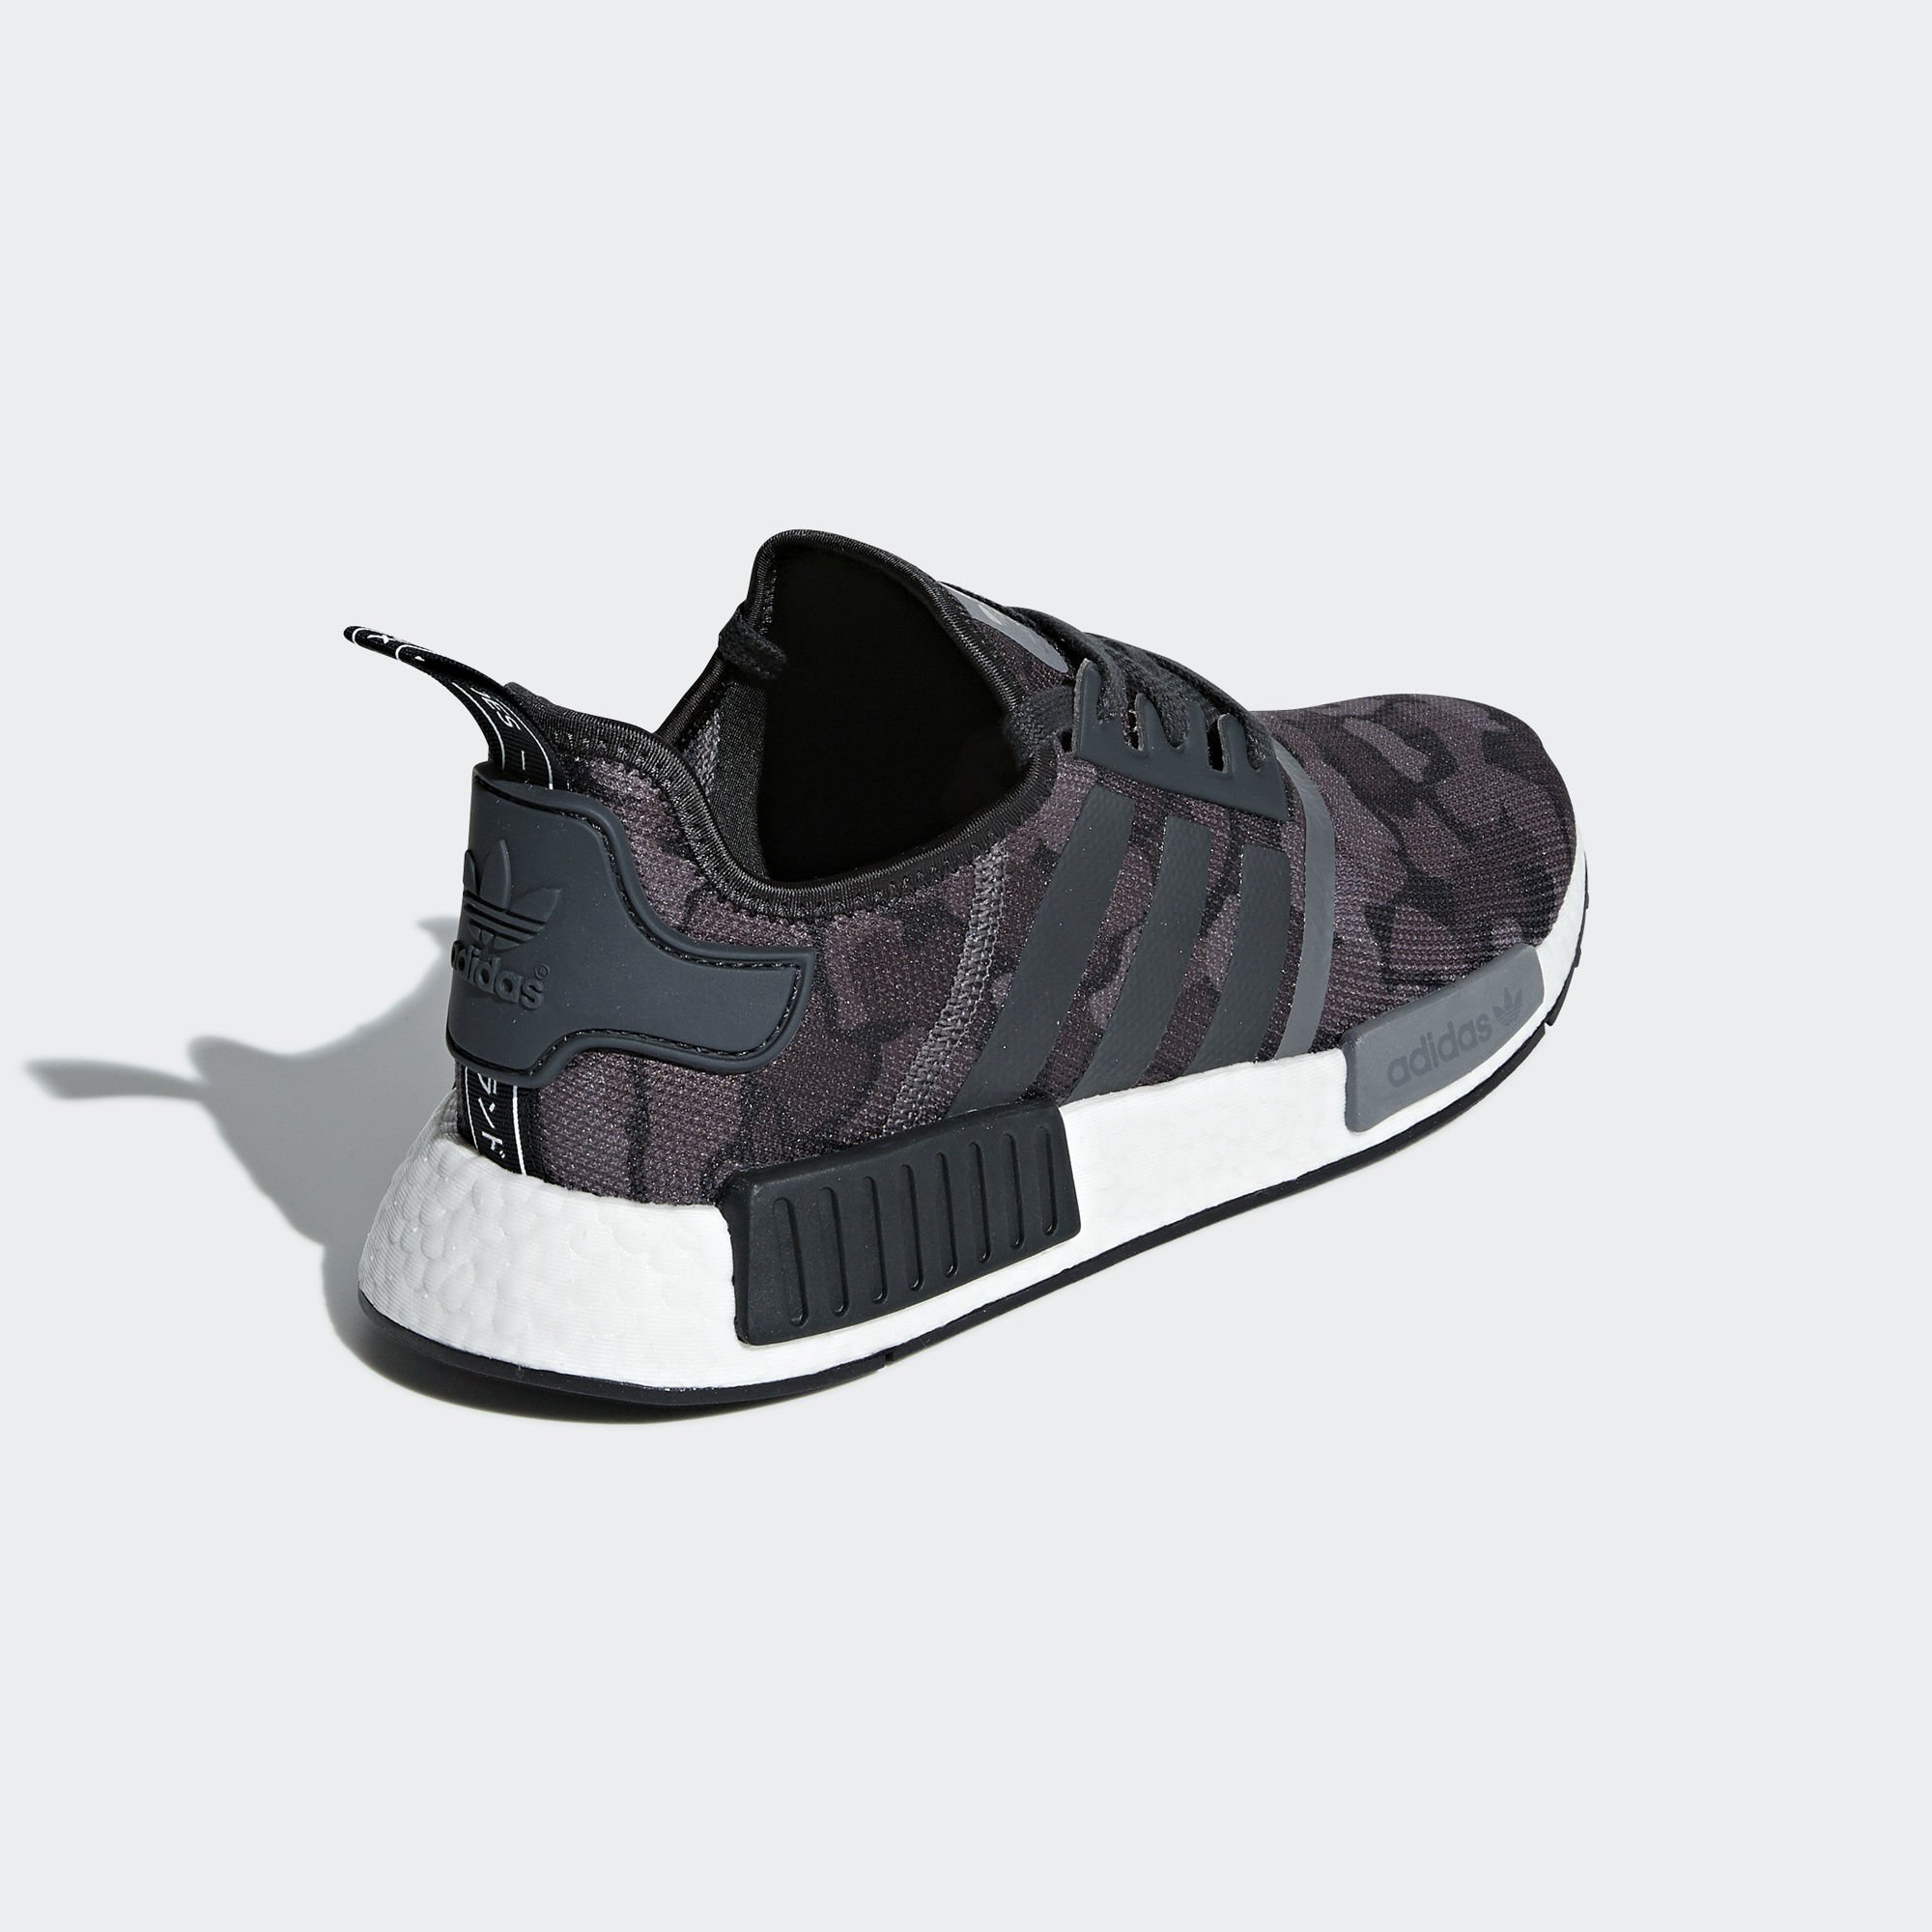 adidas Originals NMD_R1 'Black Camo' (D96616)